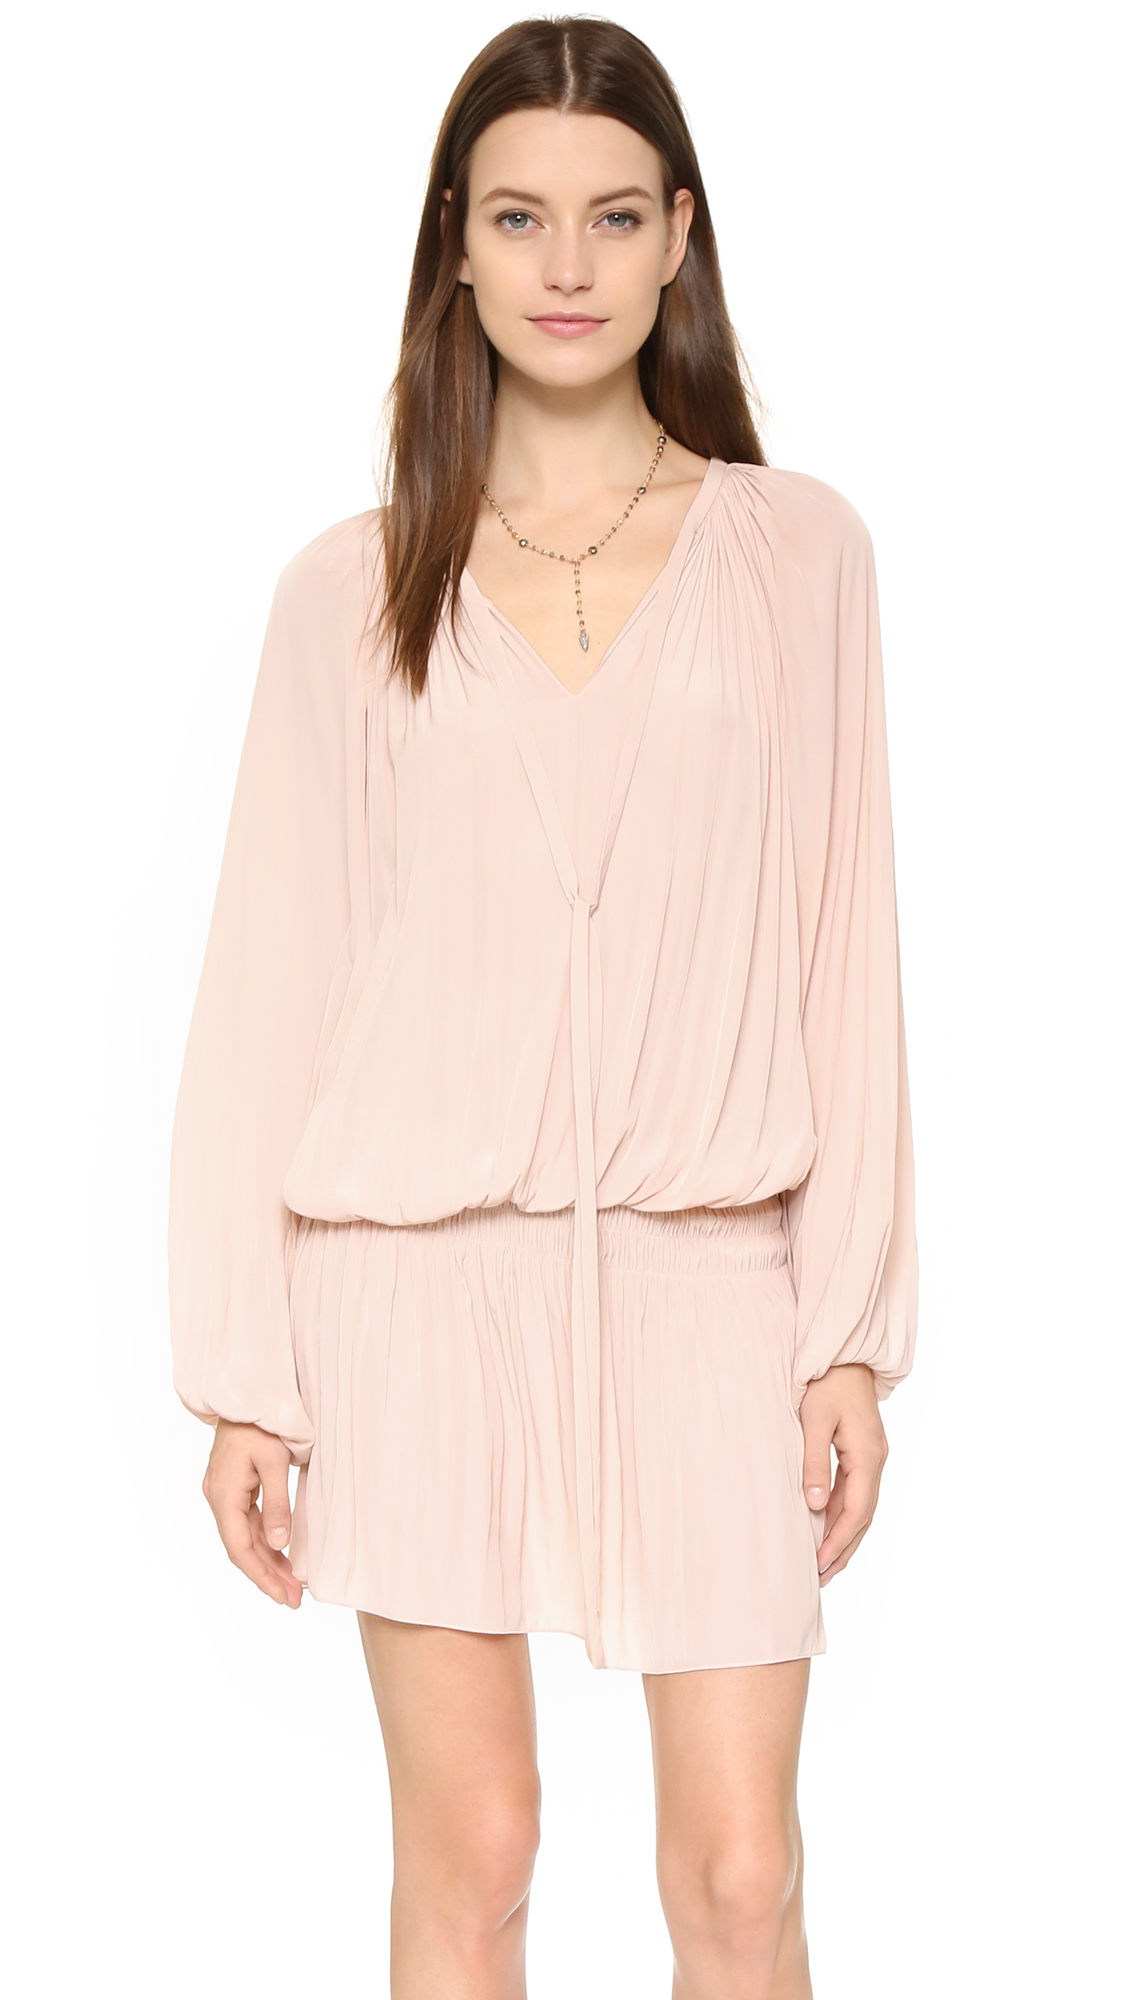 Ramy Brook Paris Dress - Blush